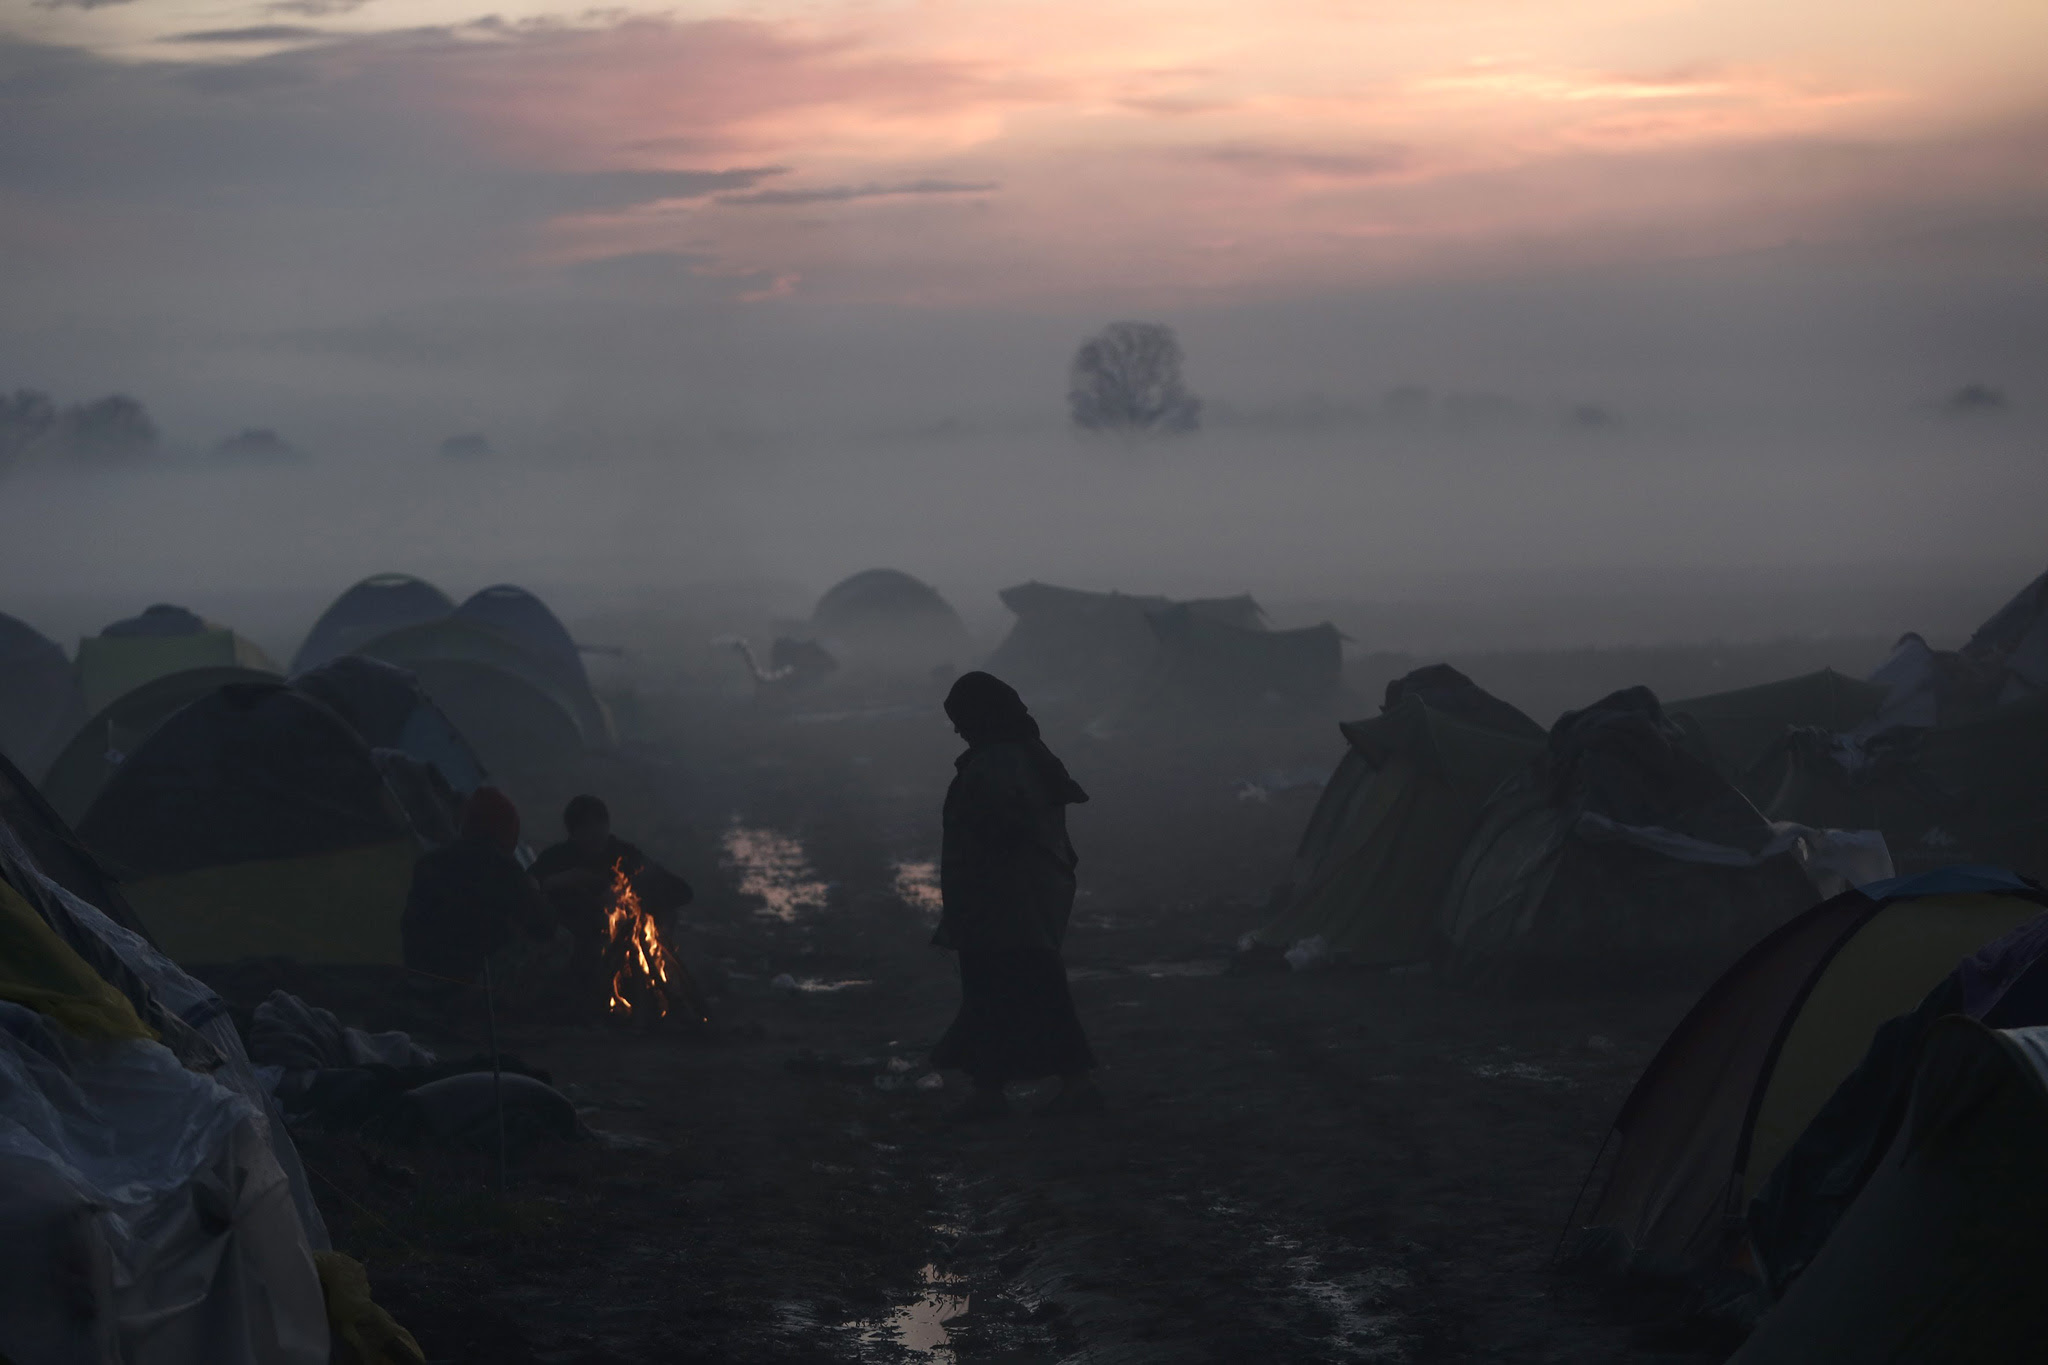 Still thousands of refugees massing in Idomeni to enter Macedonia...epa05205764 Refugees try to warm themselves with a fire at a refugee camp during a foggy day at the border between Greece and the Former Yugoslav Republic of Macedonia (FYROM), near Idomeni, northern Greece, 11 March 2016. Greece has registered in its territory some 36,000 migrants trapped due to entry restrictions already imposed by Macedonia in recent months, by denying entry to all those who are considered economic migrants, prohibiting the passage of Afghans, and finally denying entry to all Syrians and Iraqis who are not from combat areas.  EPA/YANNIS KOLESIDIS